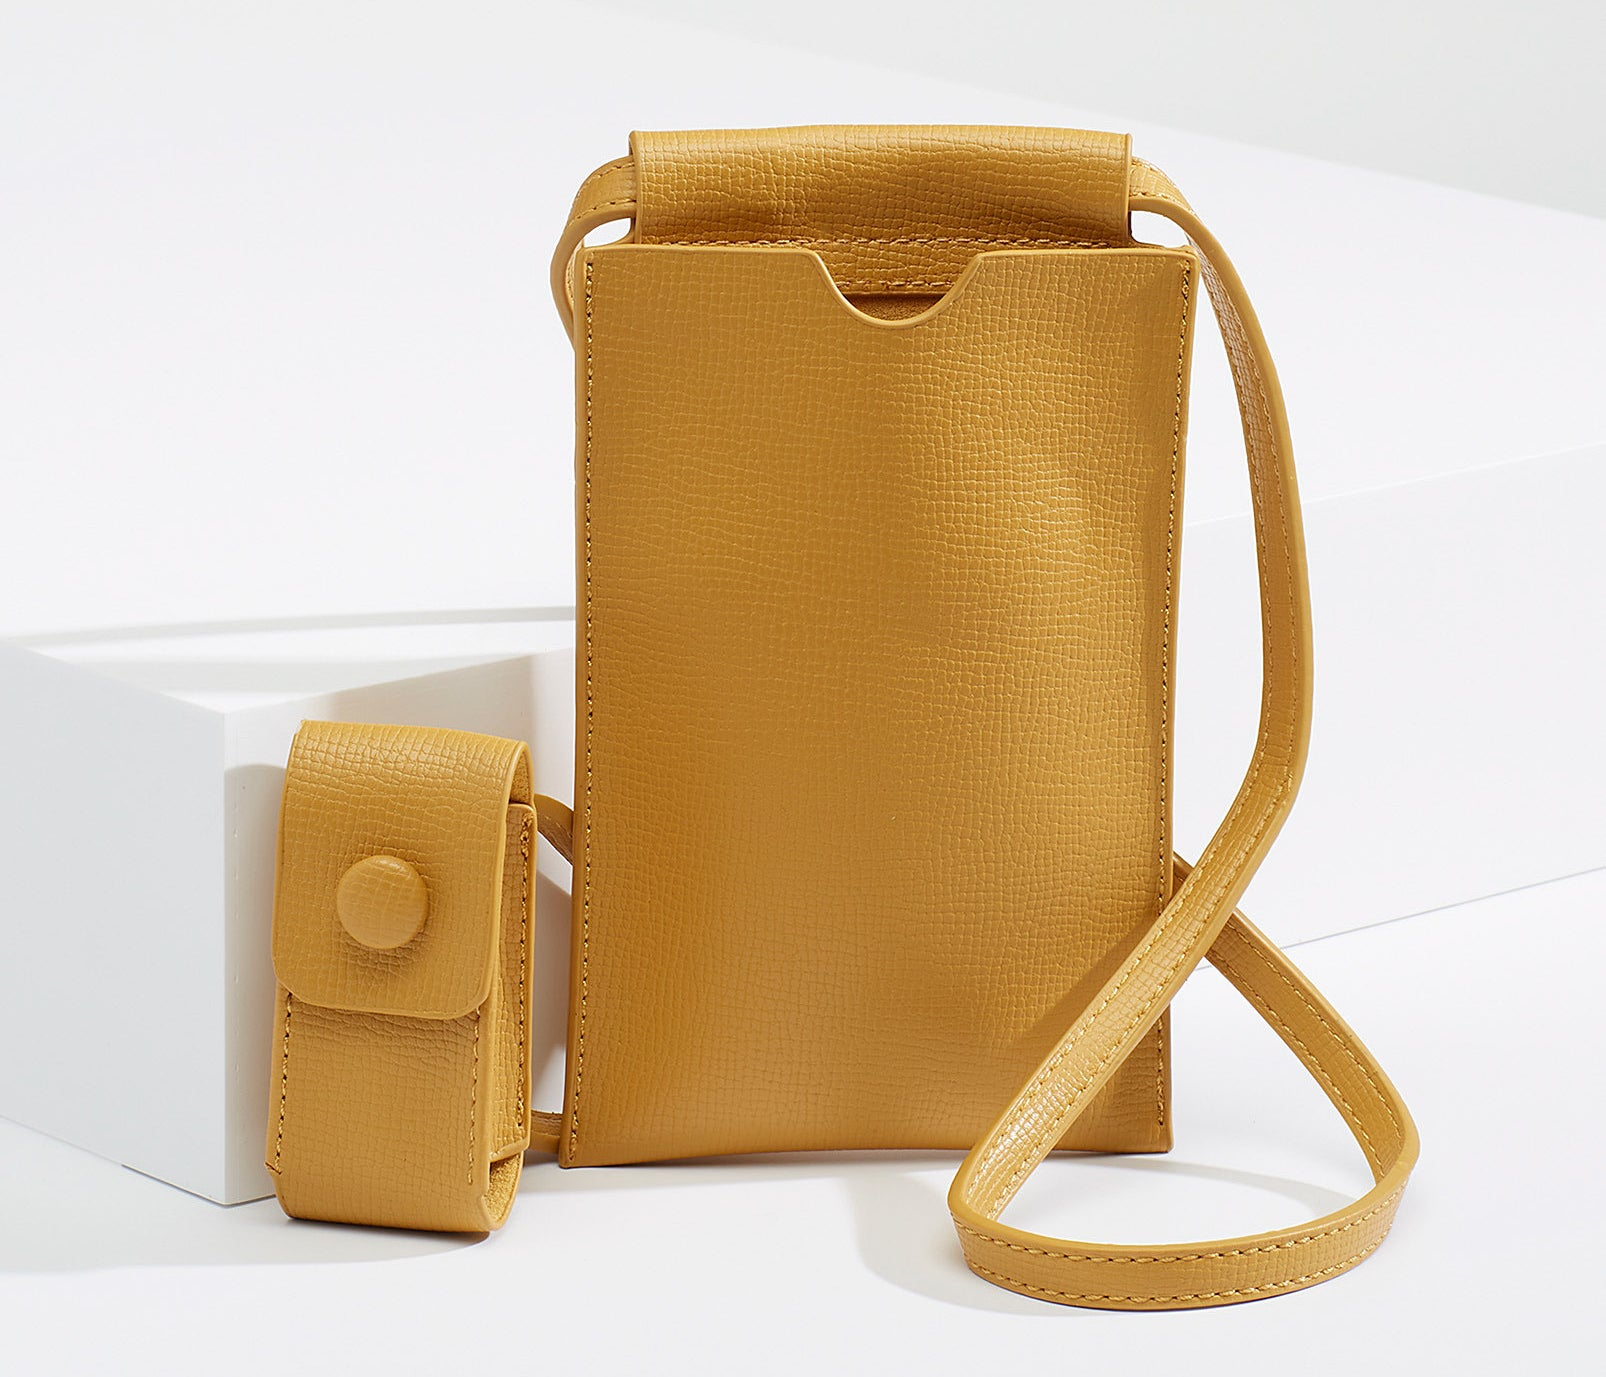 A small crossbody bag with a long strap